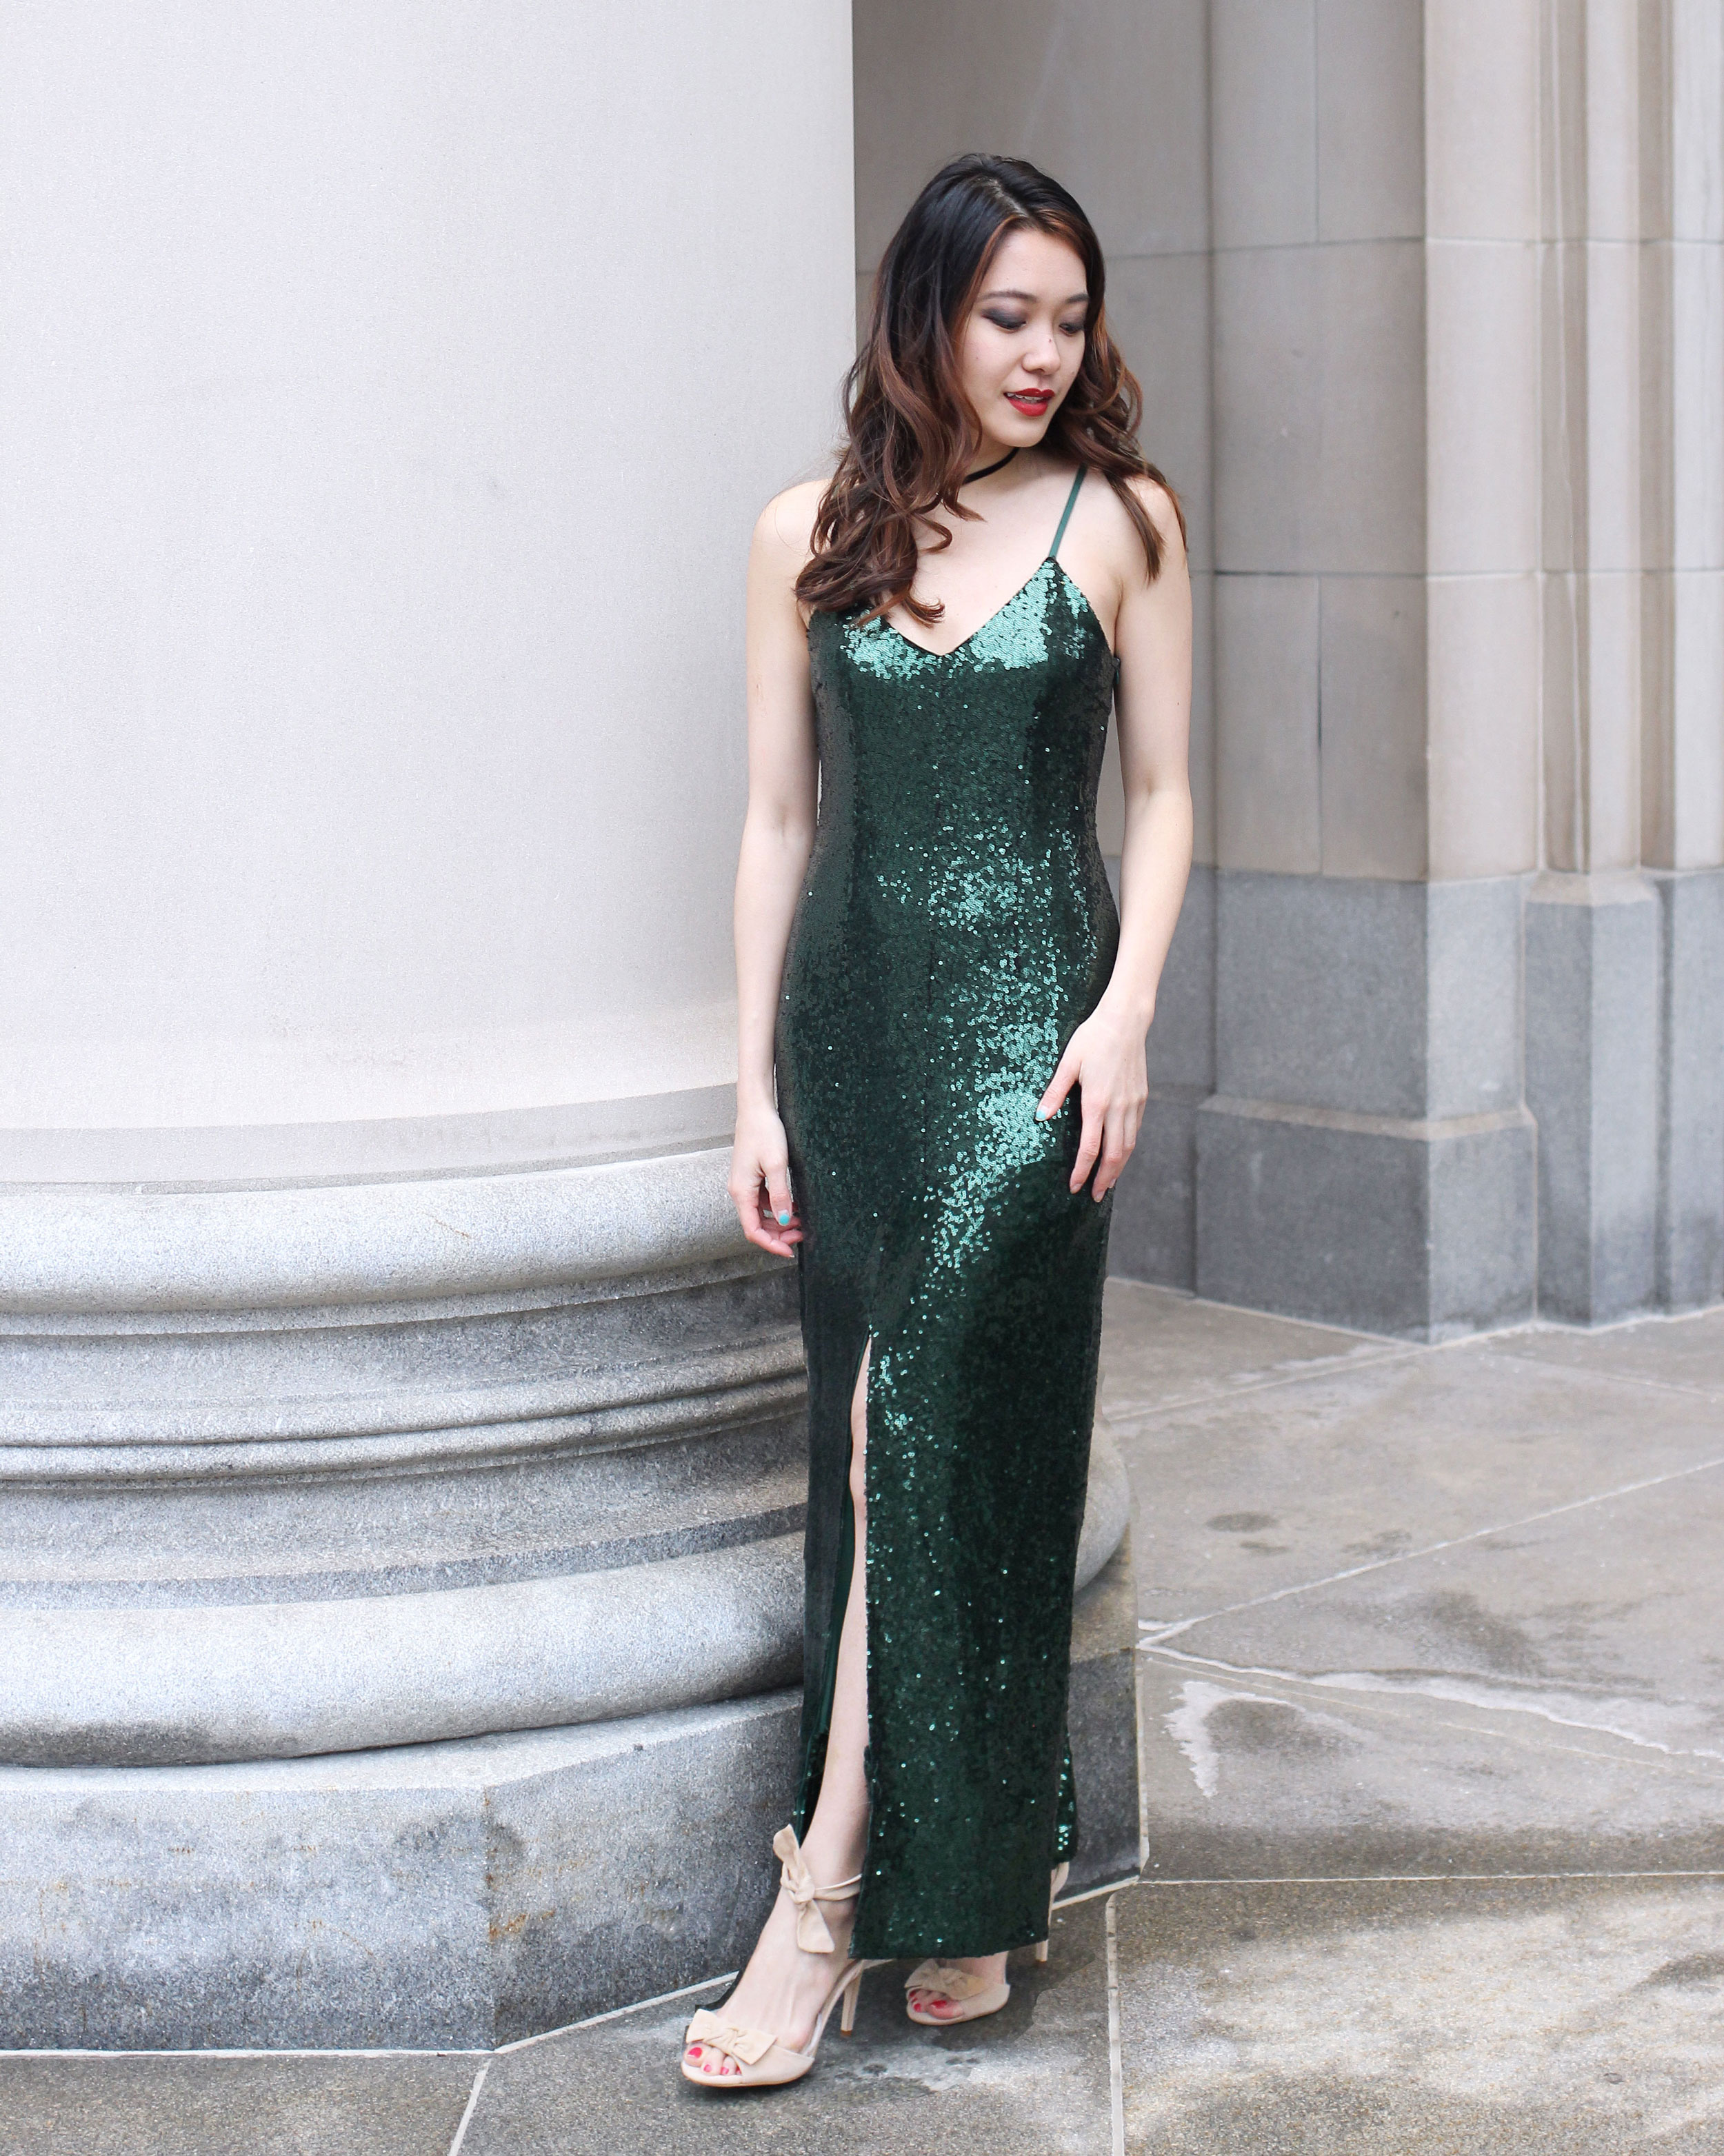 Shimmery green sequin maxi dress for black tie formal gala